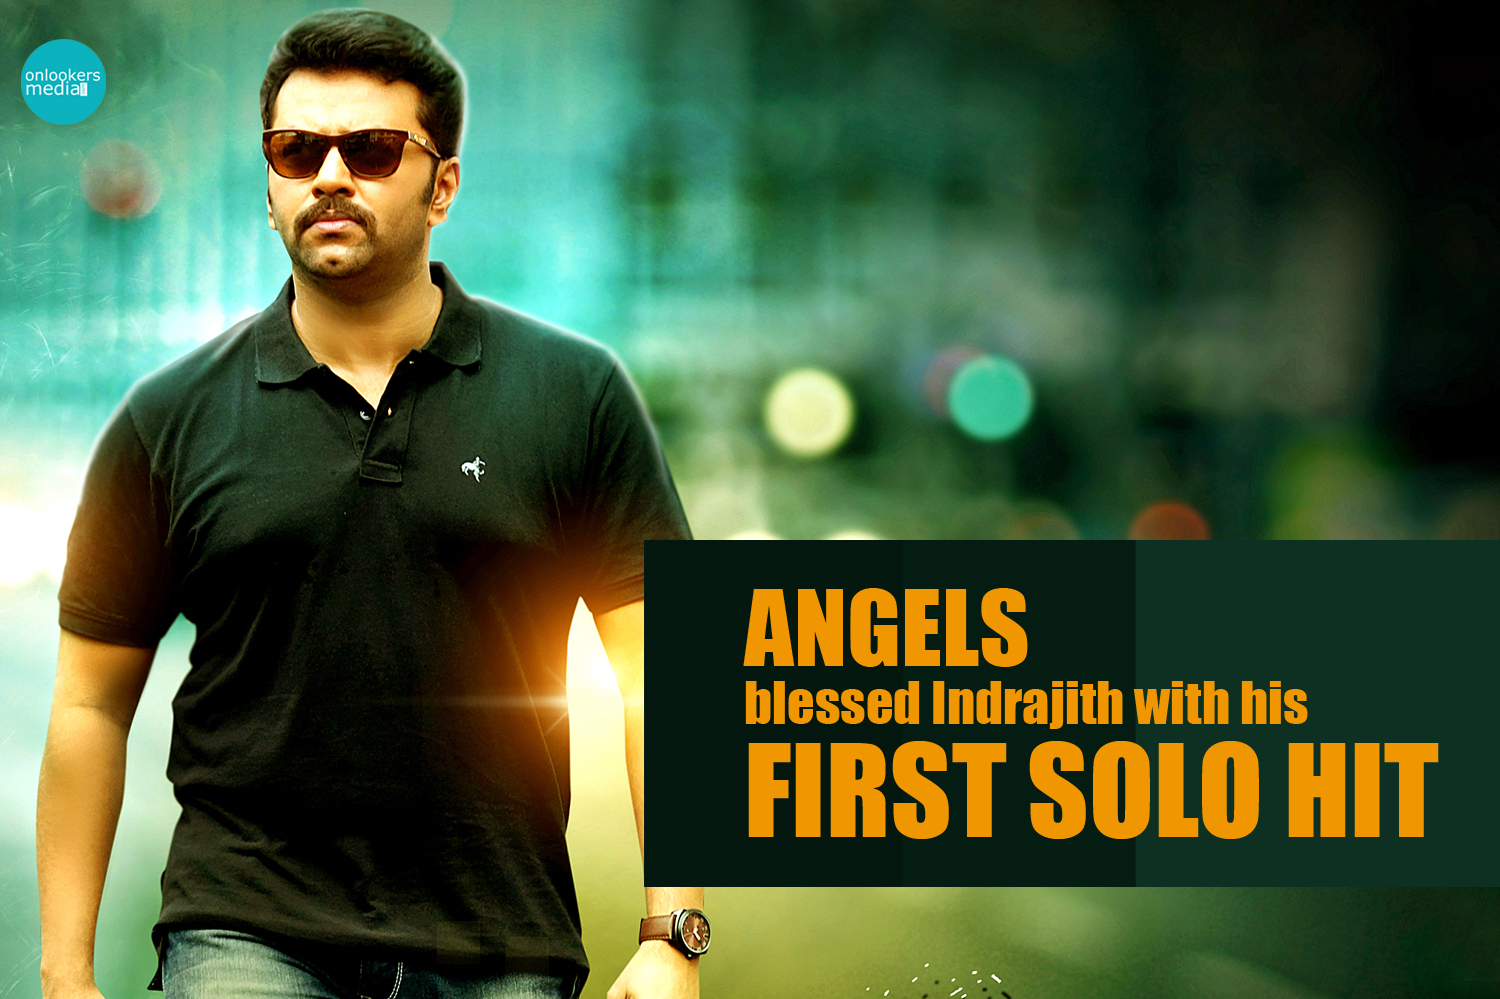 Angels-blessed-Indrajith-with-his-first-solo-hit-Angels-Malayalam-Movie-Review-Report-Collection-Onlookers-Media